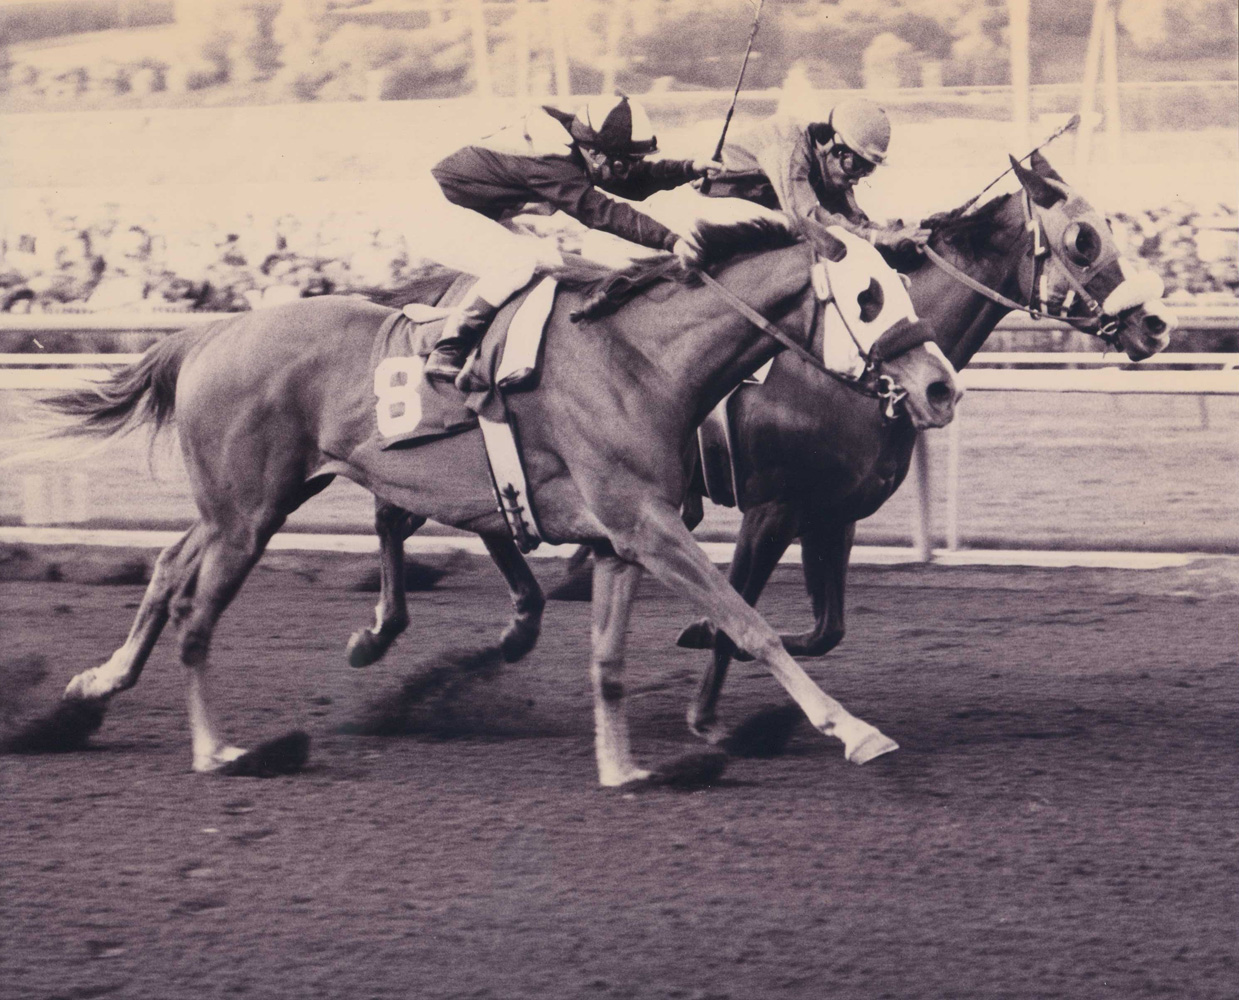 Chris Evert (on the inside with Jorge Velasquez up) winning the 1975 La Canada at Santa Anita by a nose (Santa Anita Photo/Museum Collection)